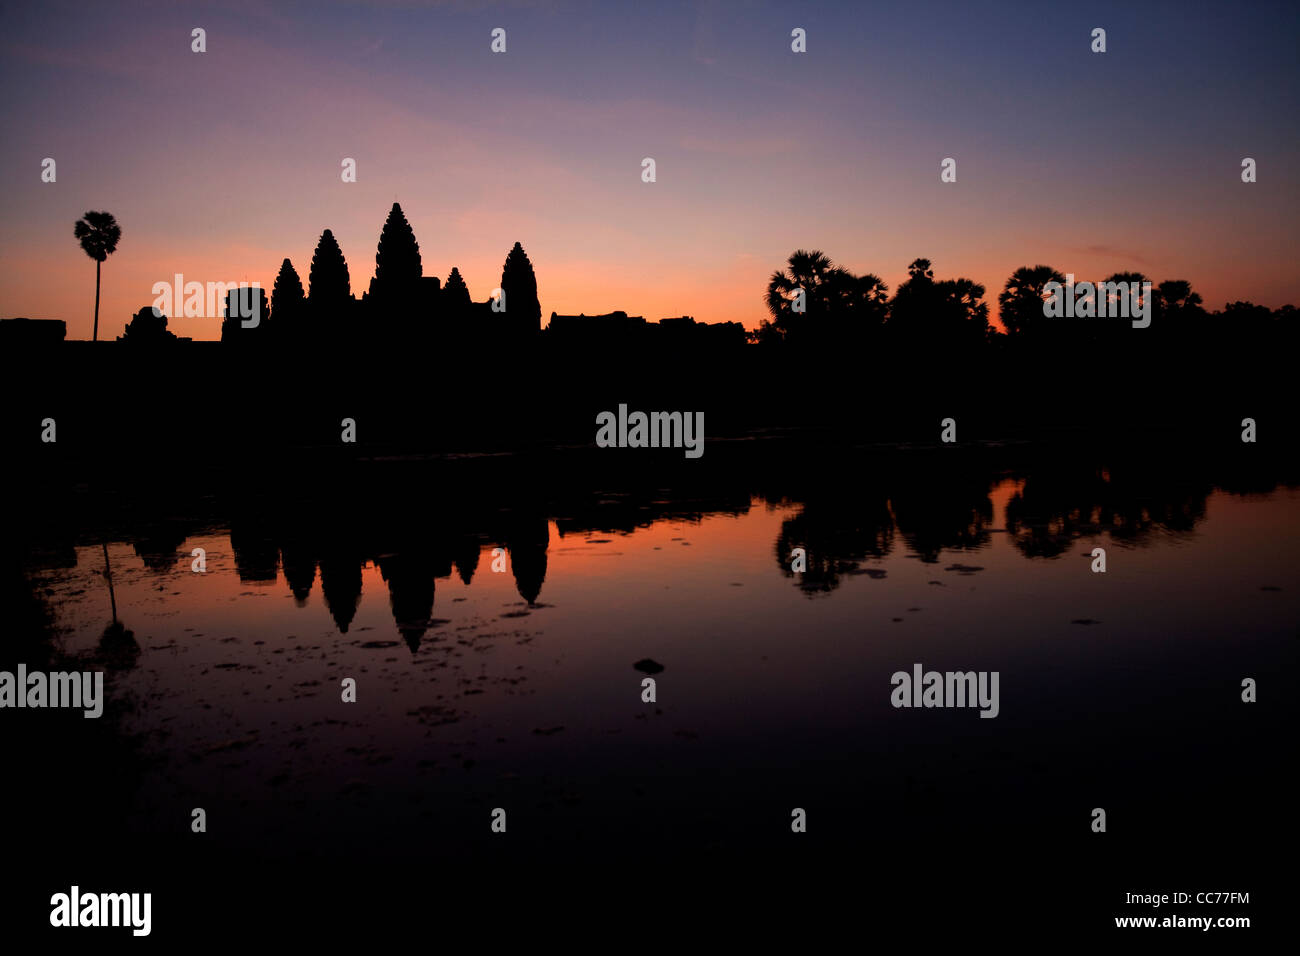 Sunrise at Angkor Wat, Angkor area, Siem Reap, Cambodia, Asia. The world's largest religious building - Stock Image